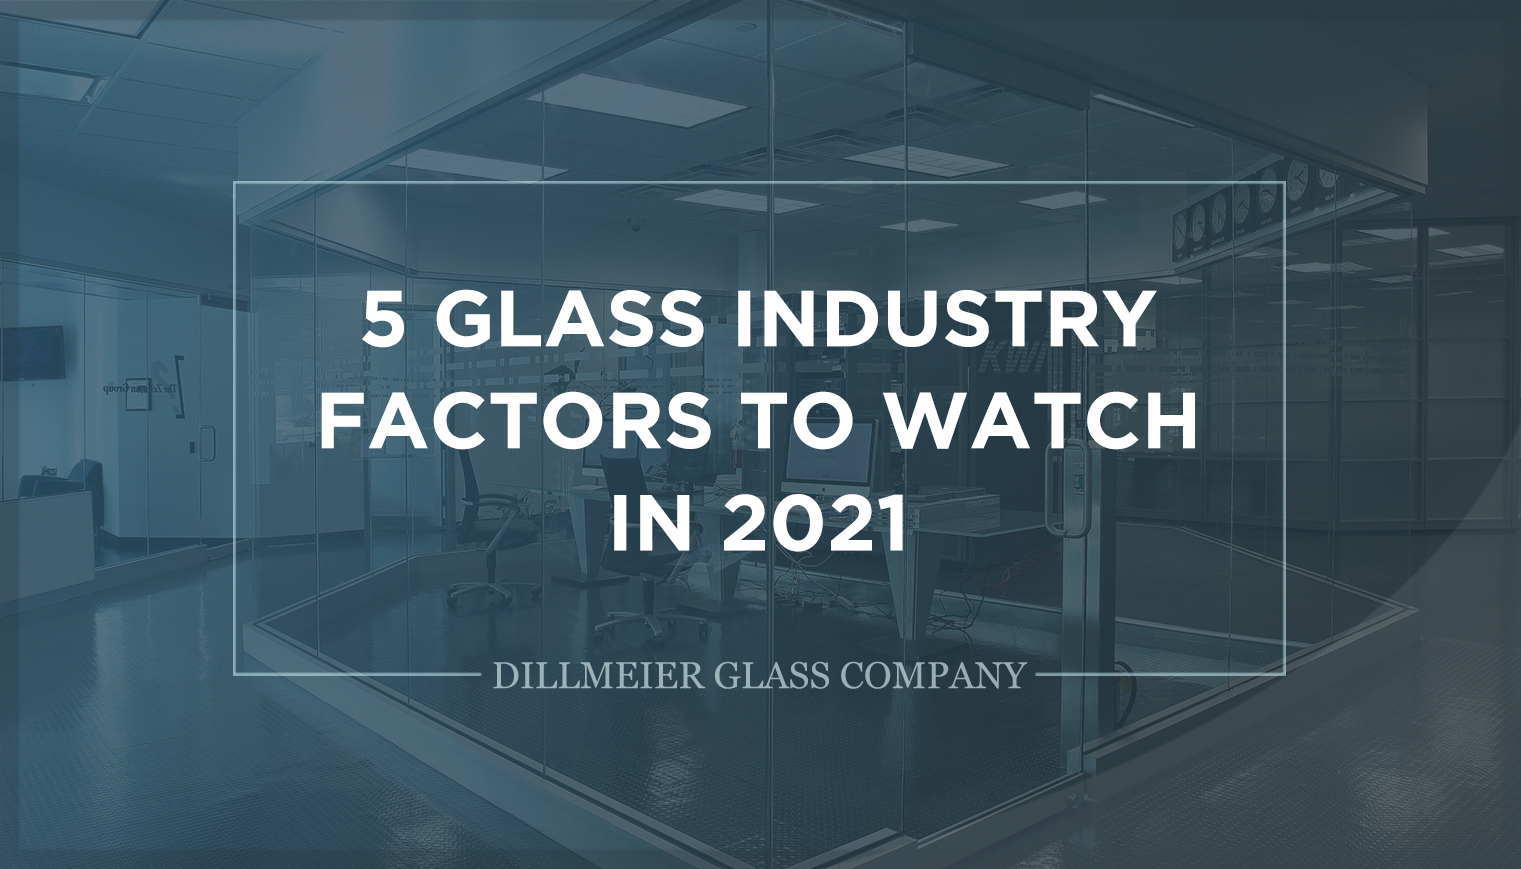 5 Glass Industry Factors to Watch in 2021